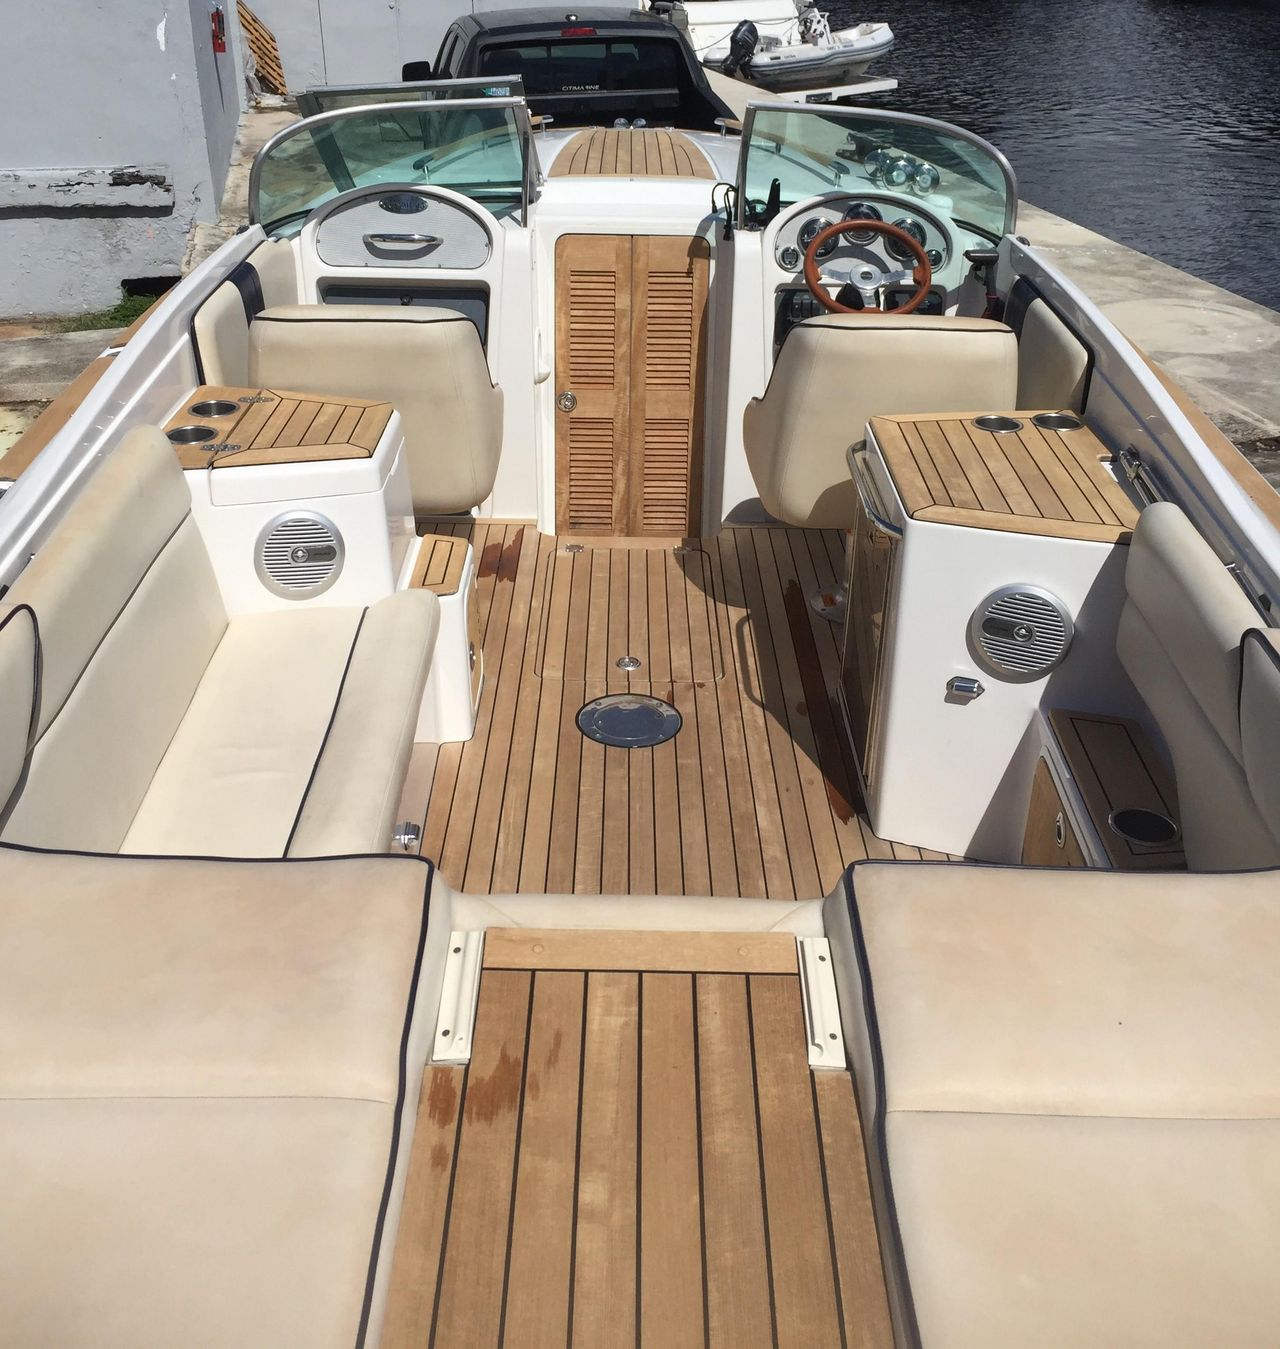 2004 Used Chris-Craft Corsair 25 Cruiser Boat For Sale - $40,500